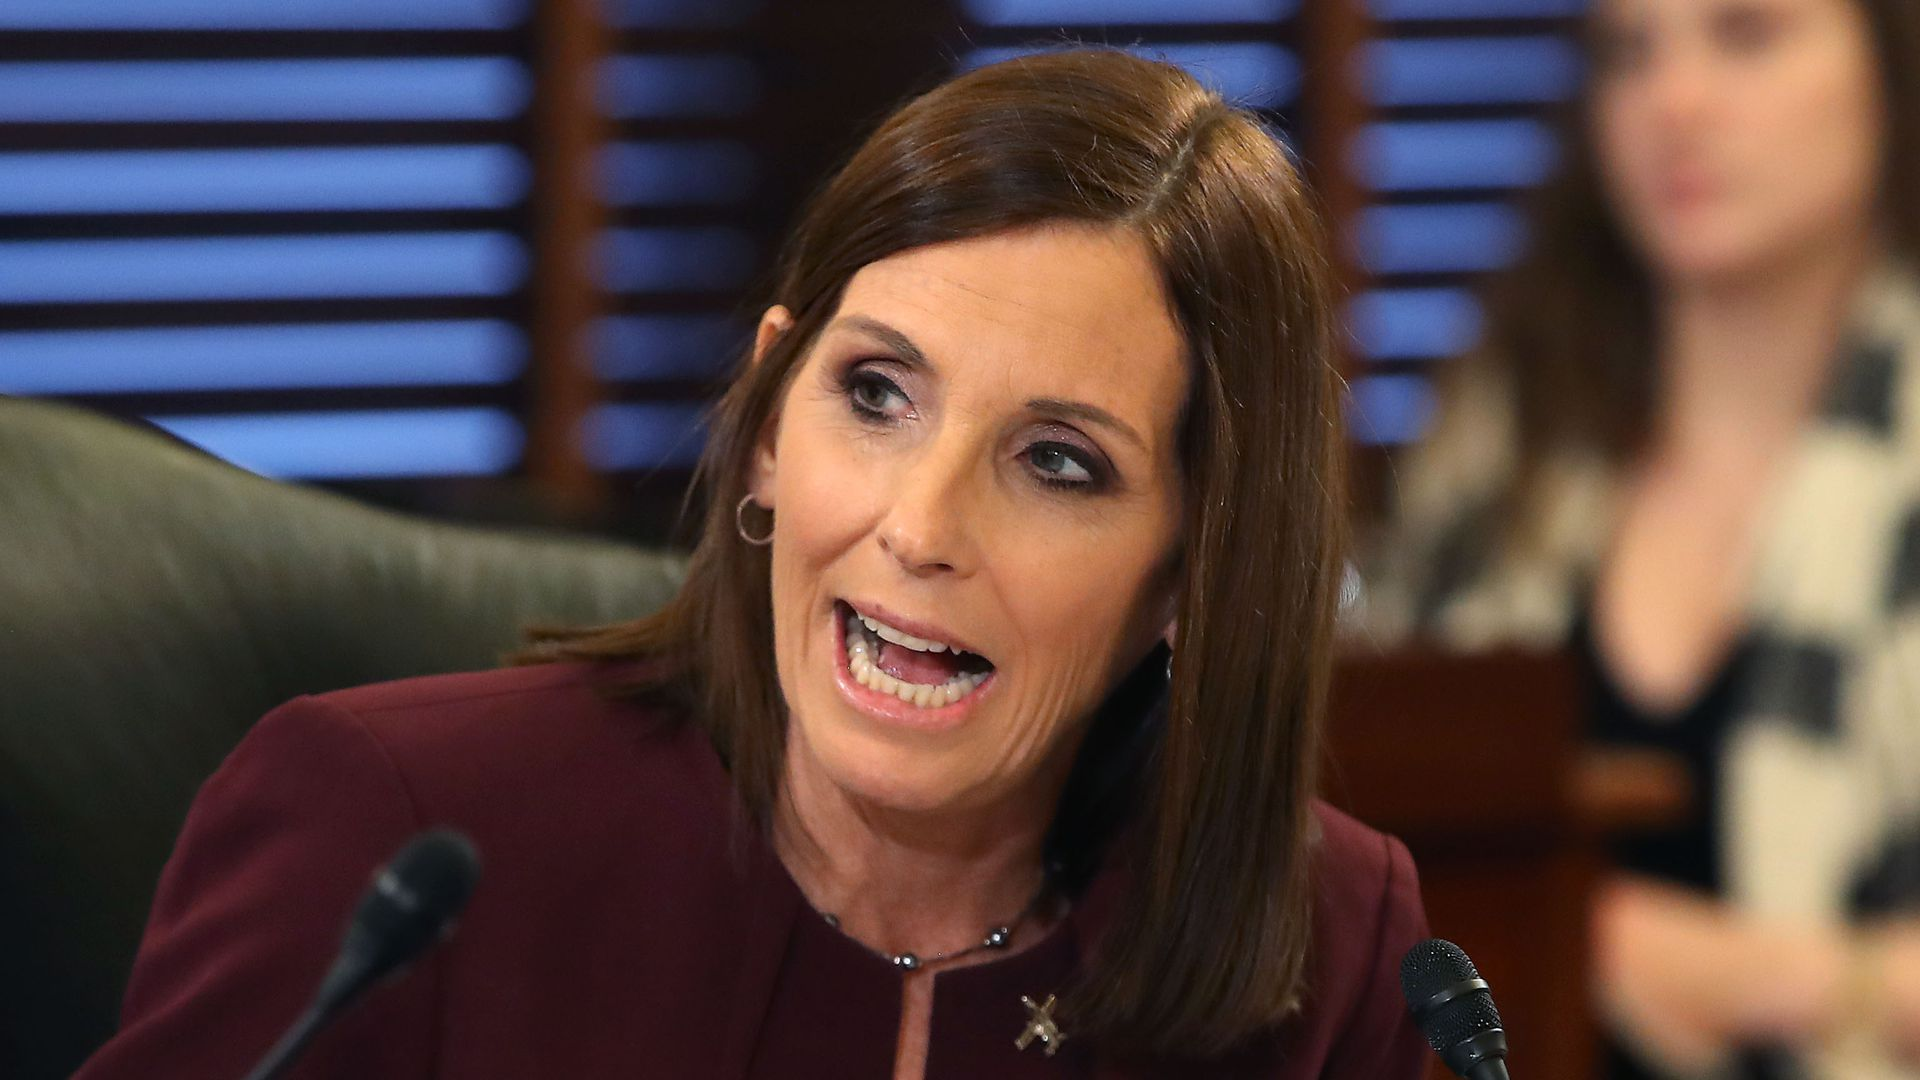 Sen. Martha McSally says she hopes abuse survivors can find some healing in their own lives.